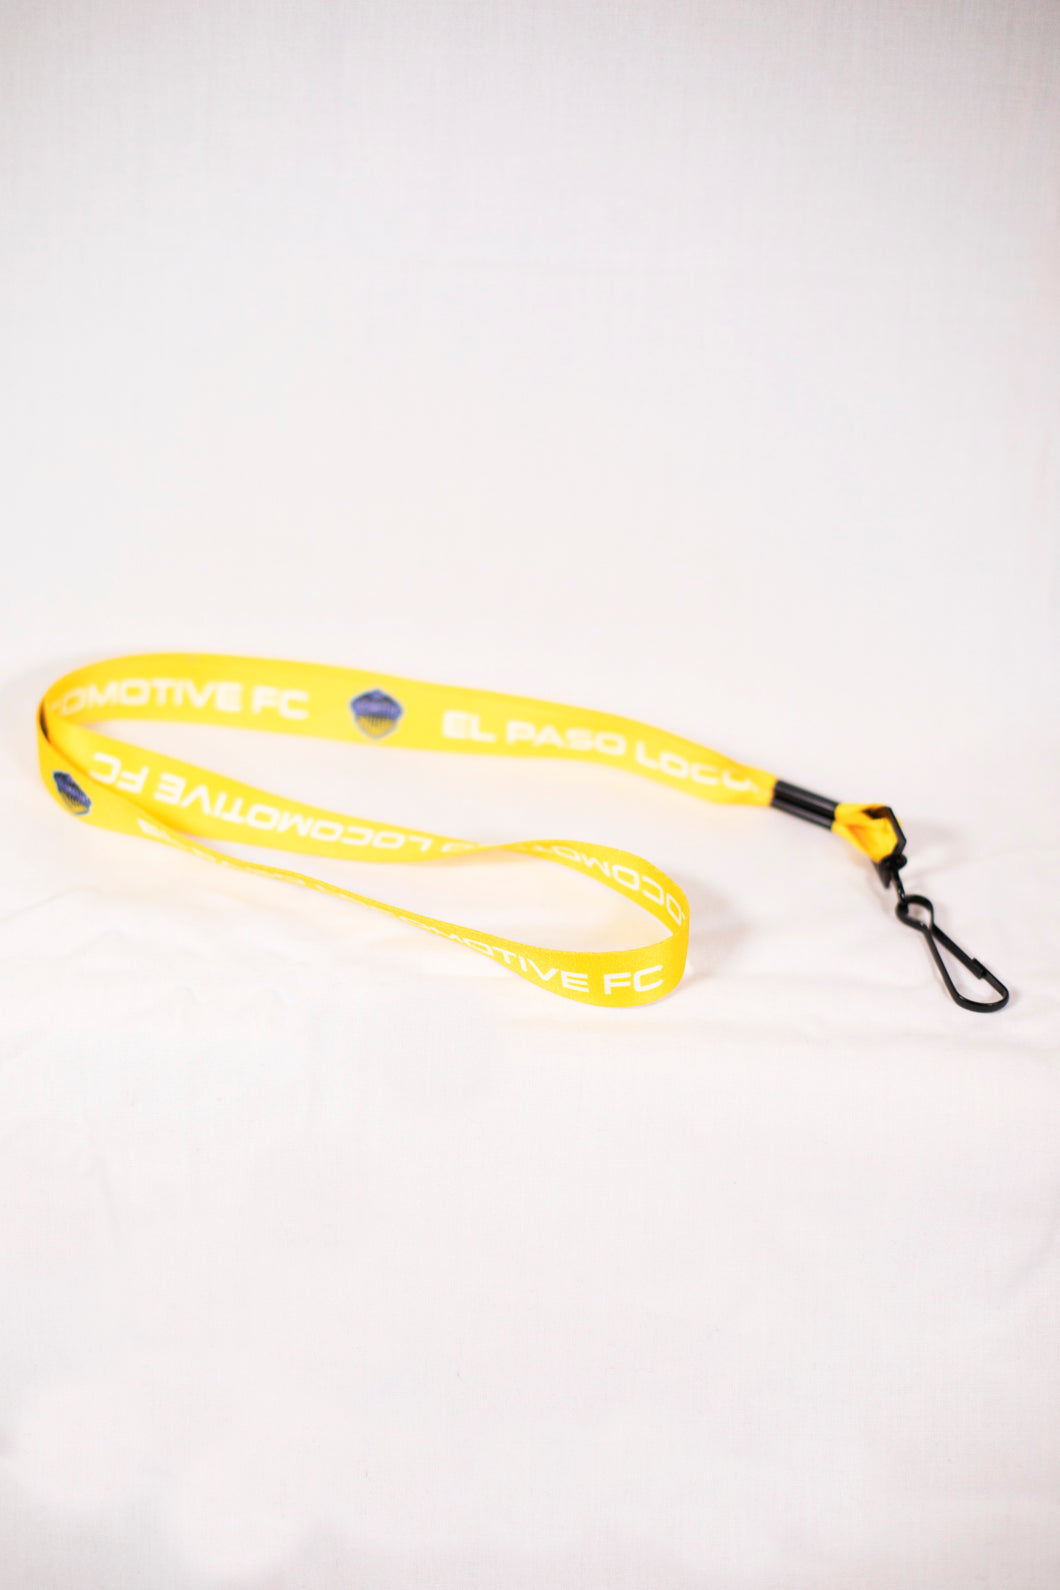 Locomotive Lanyard - Yellow